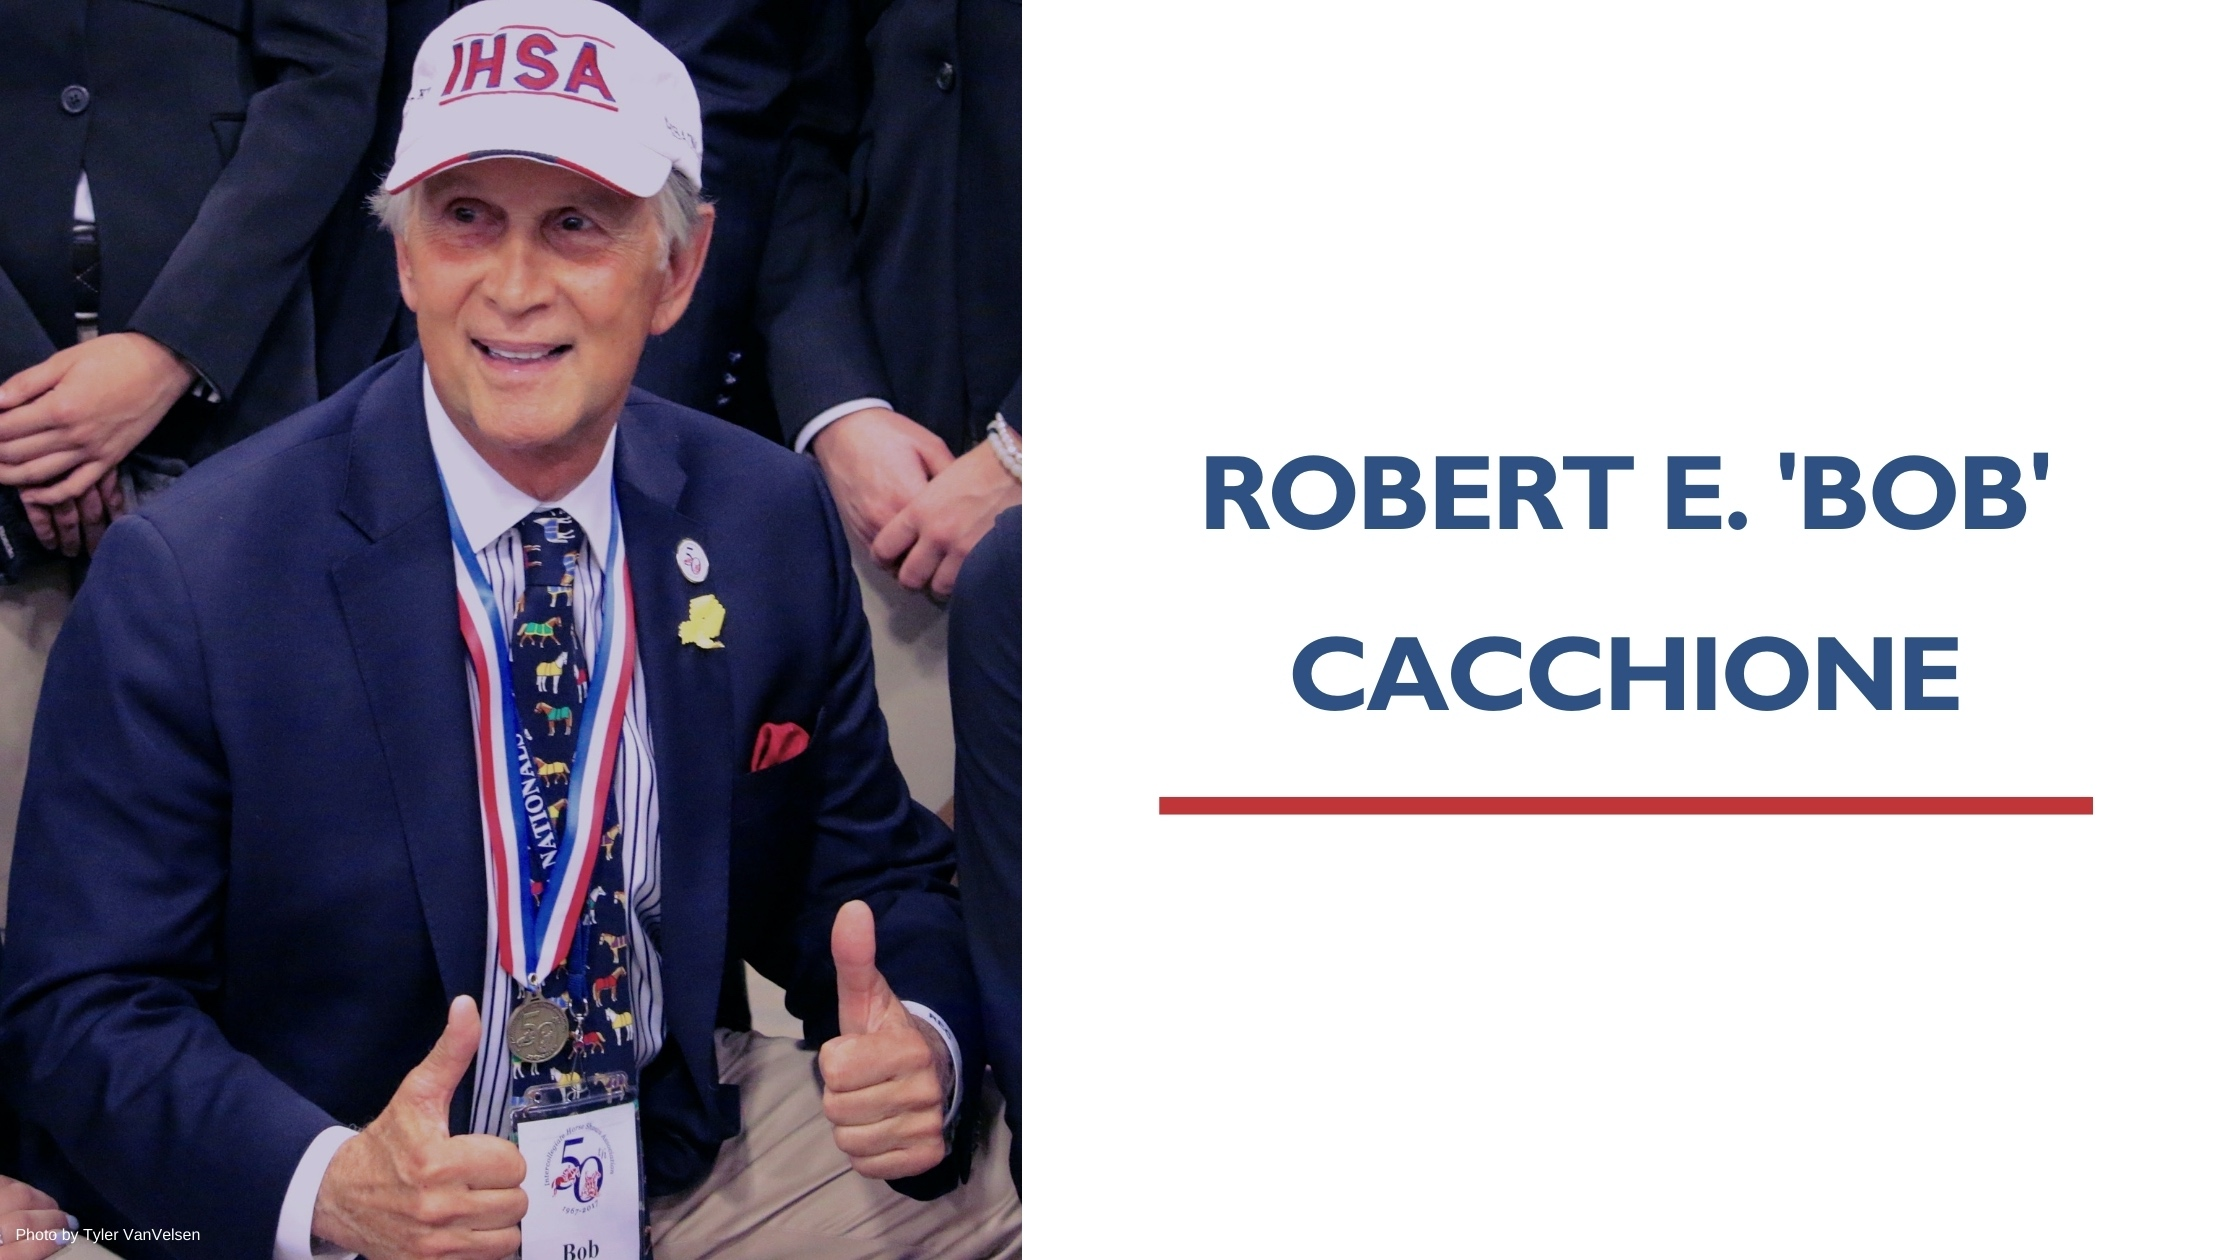 ihsa-hall-of-fame-bob-cacchione